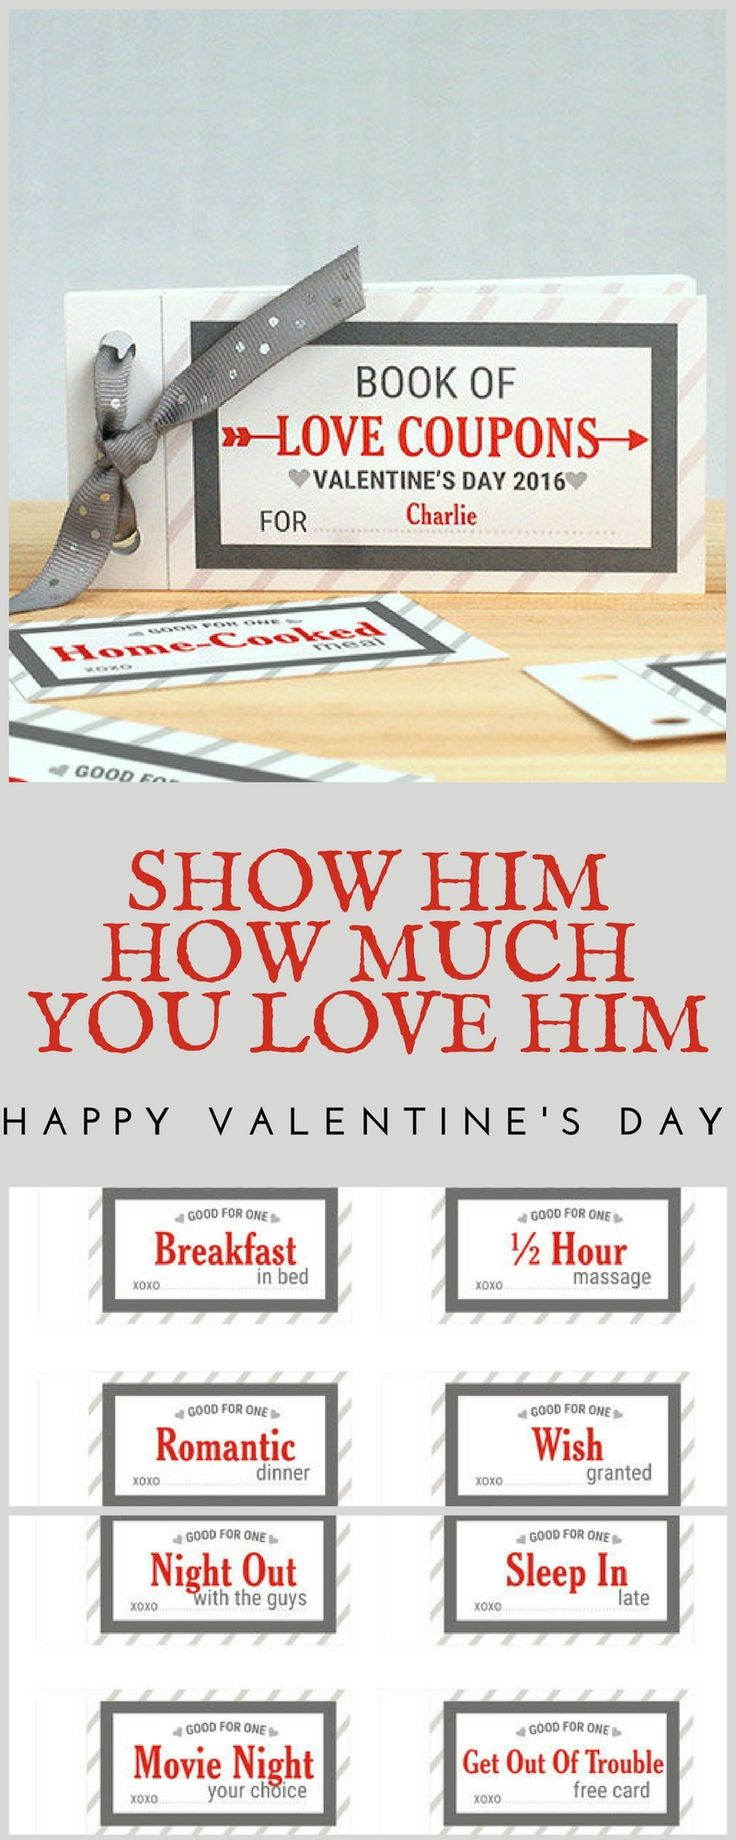 Ideas for a coupon book for him